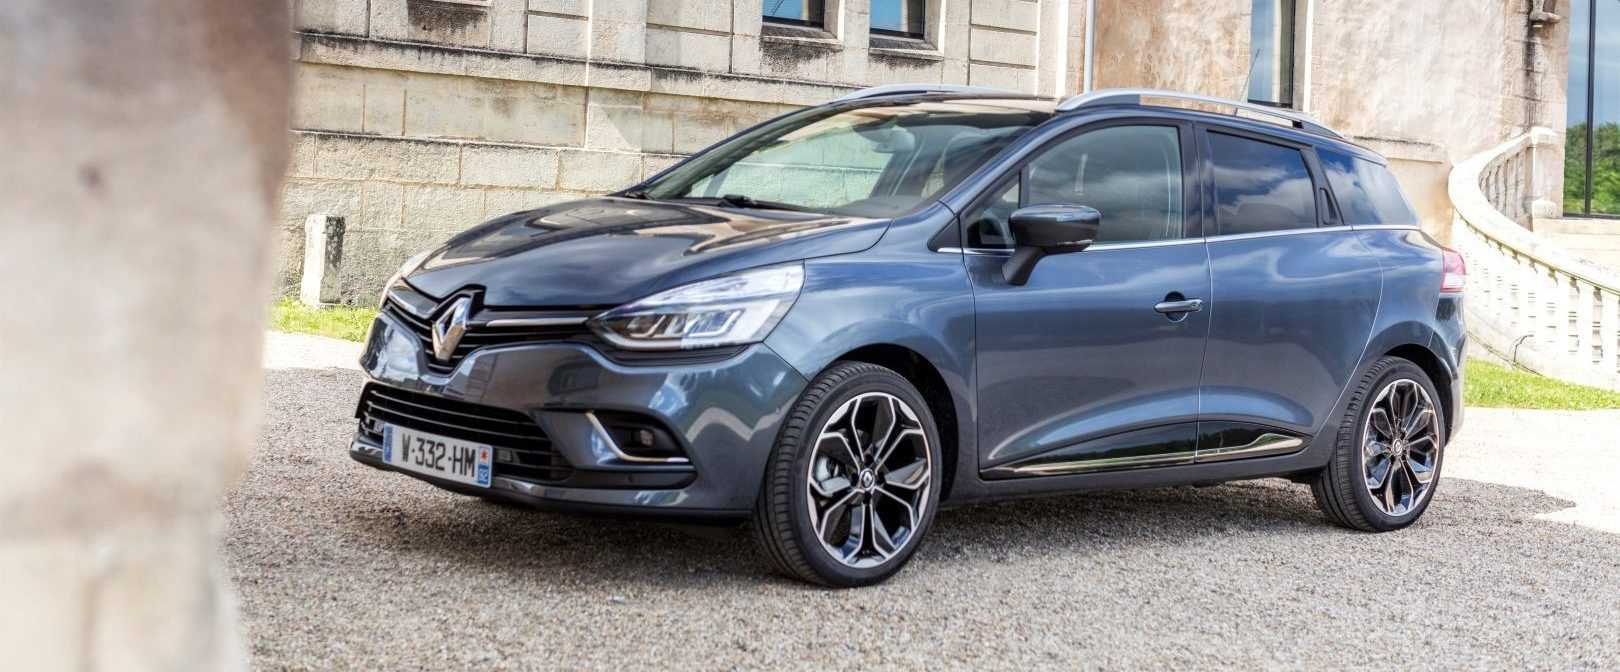 Renault Clio Estate 2016